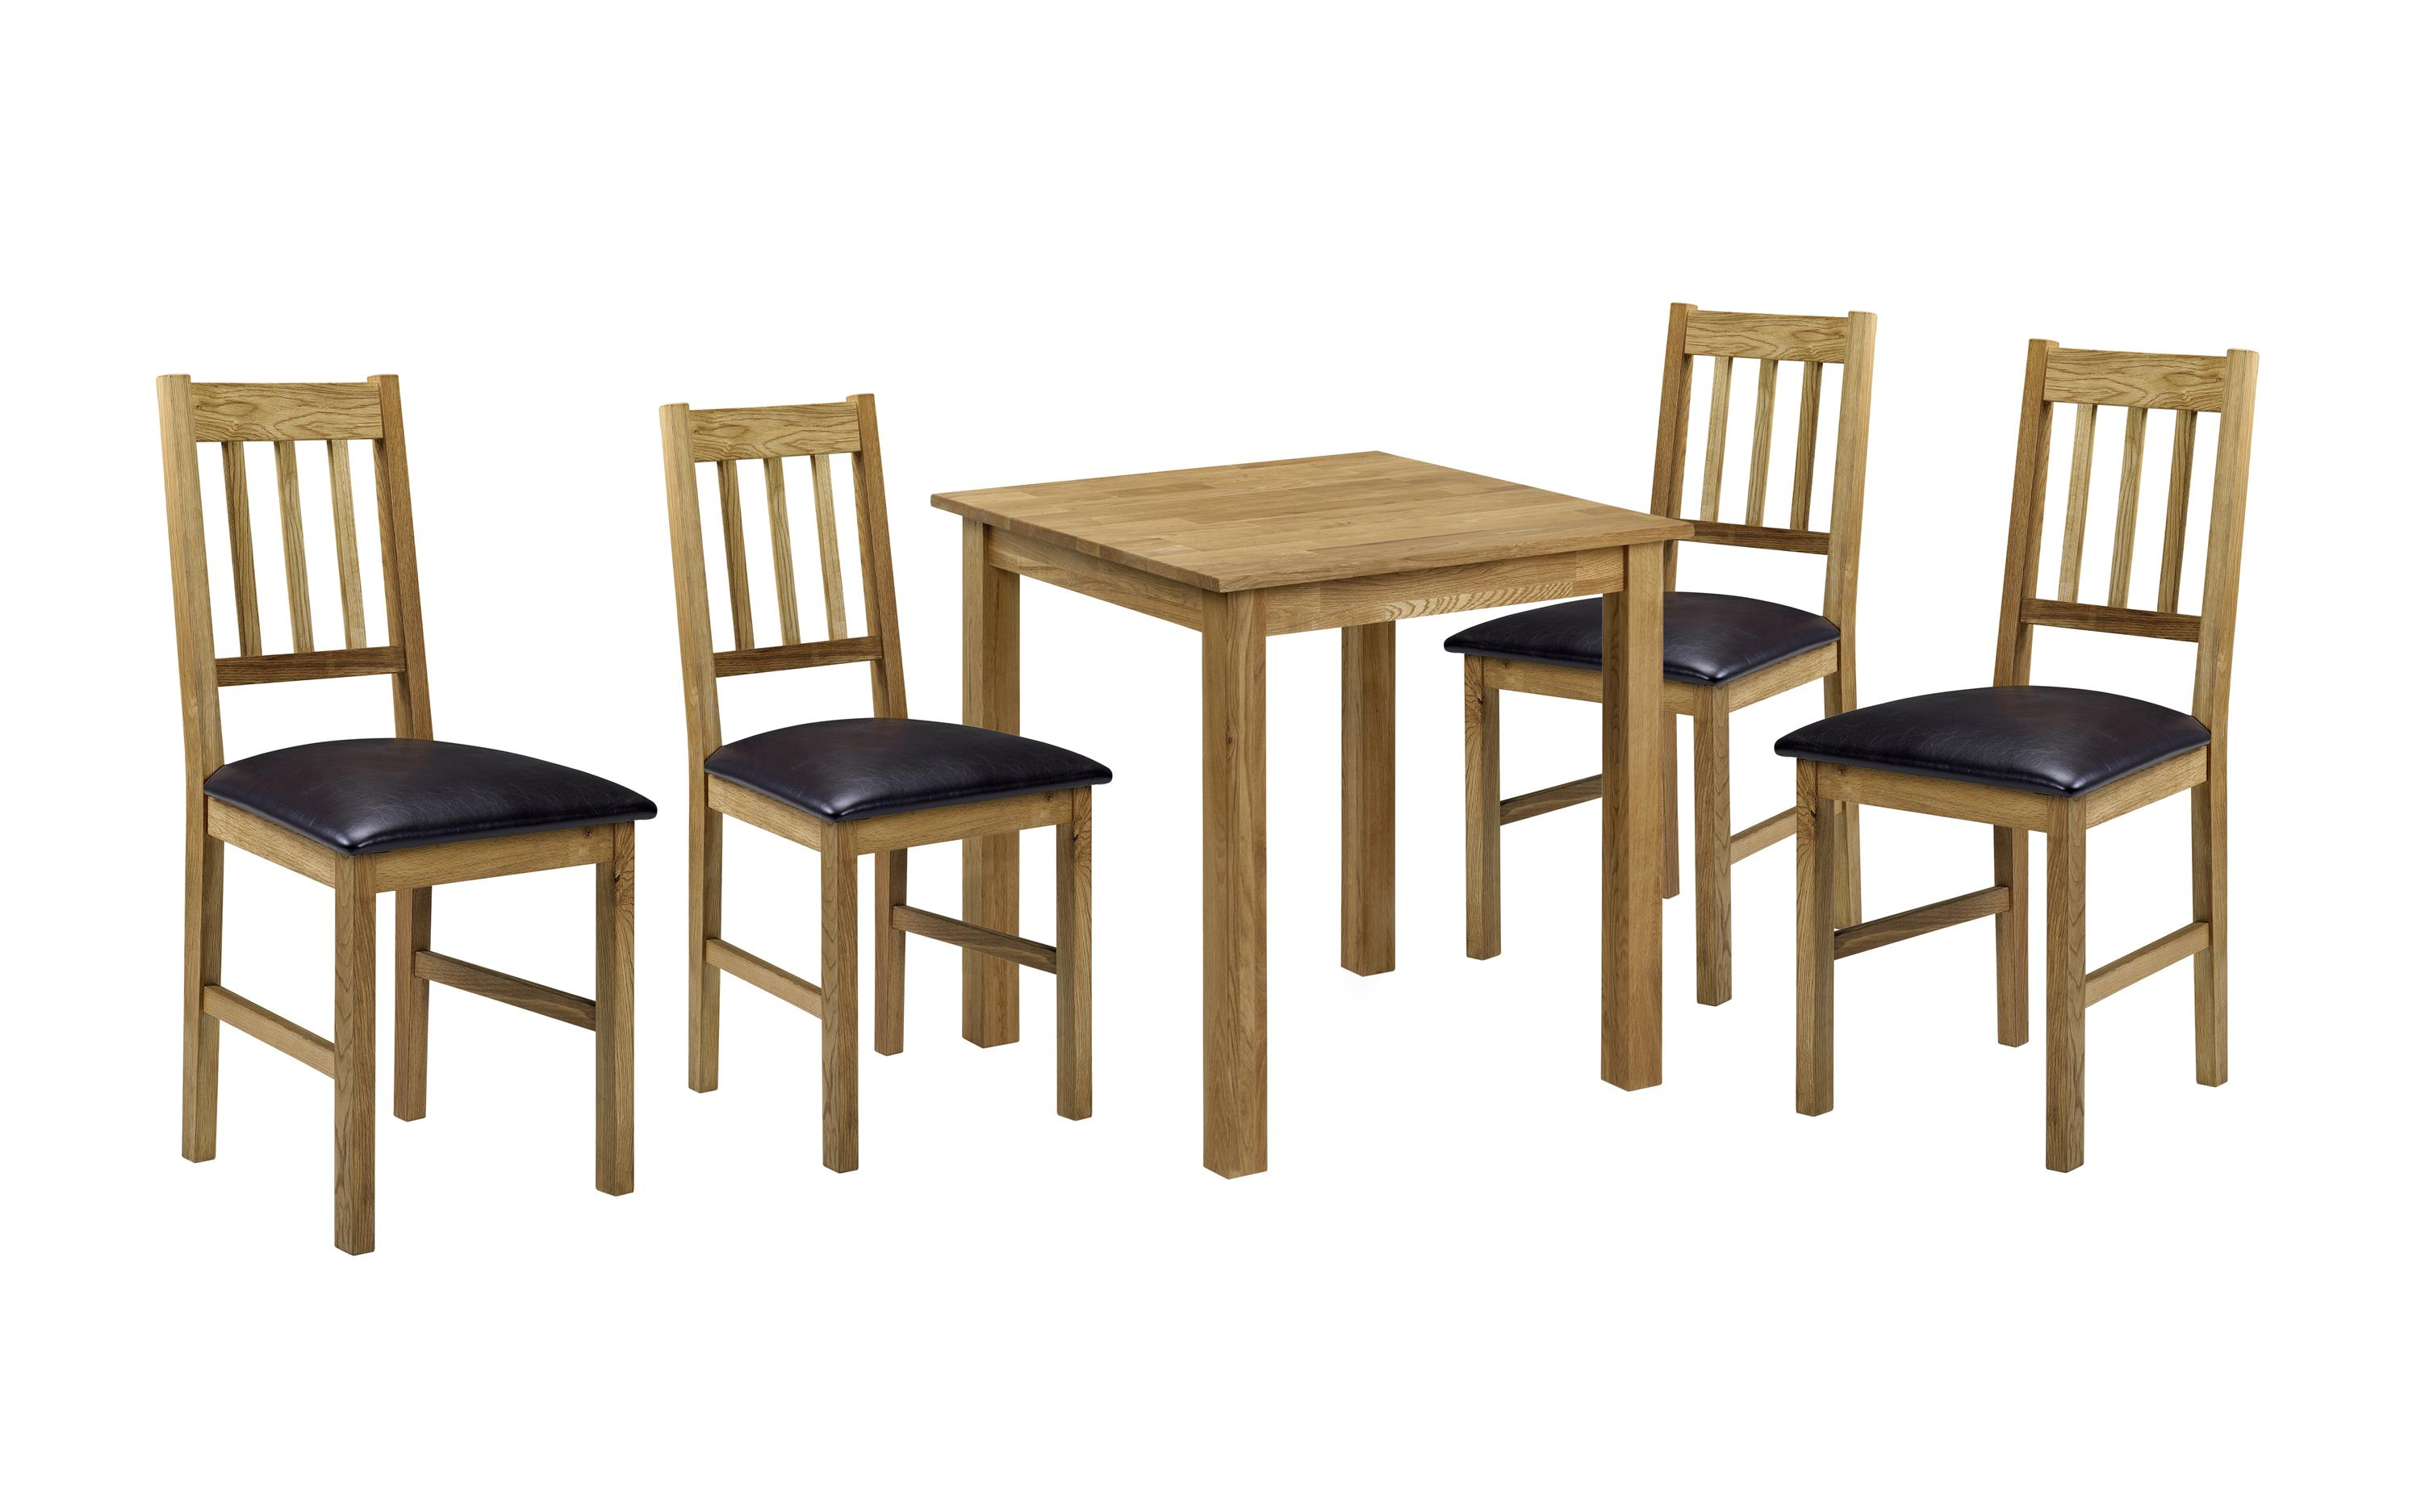 Herrington Square Dining Table & 4 Chairs, , large